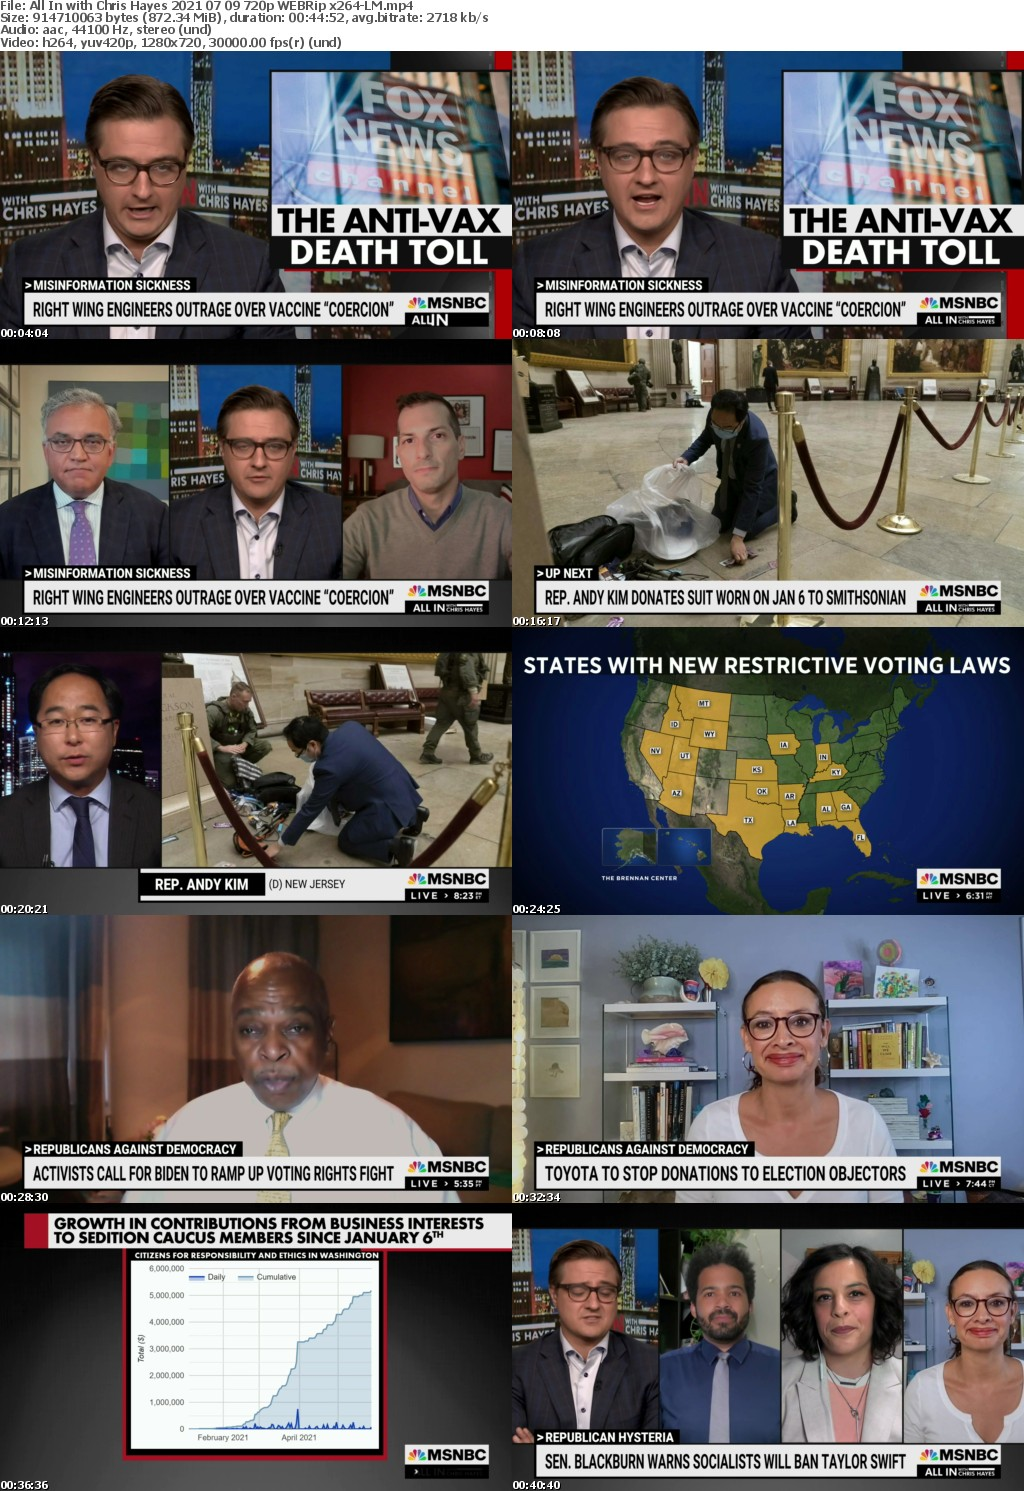 All In with Chris Hayes 2021 07 09 720p WEBRip x264-LM